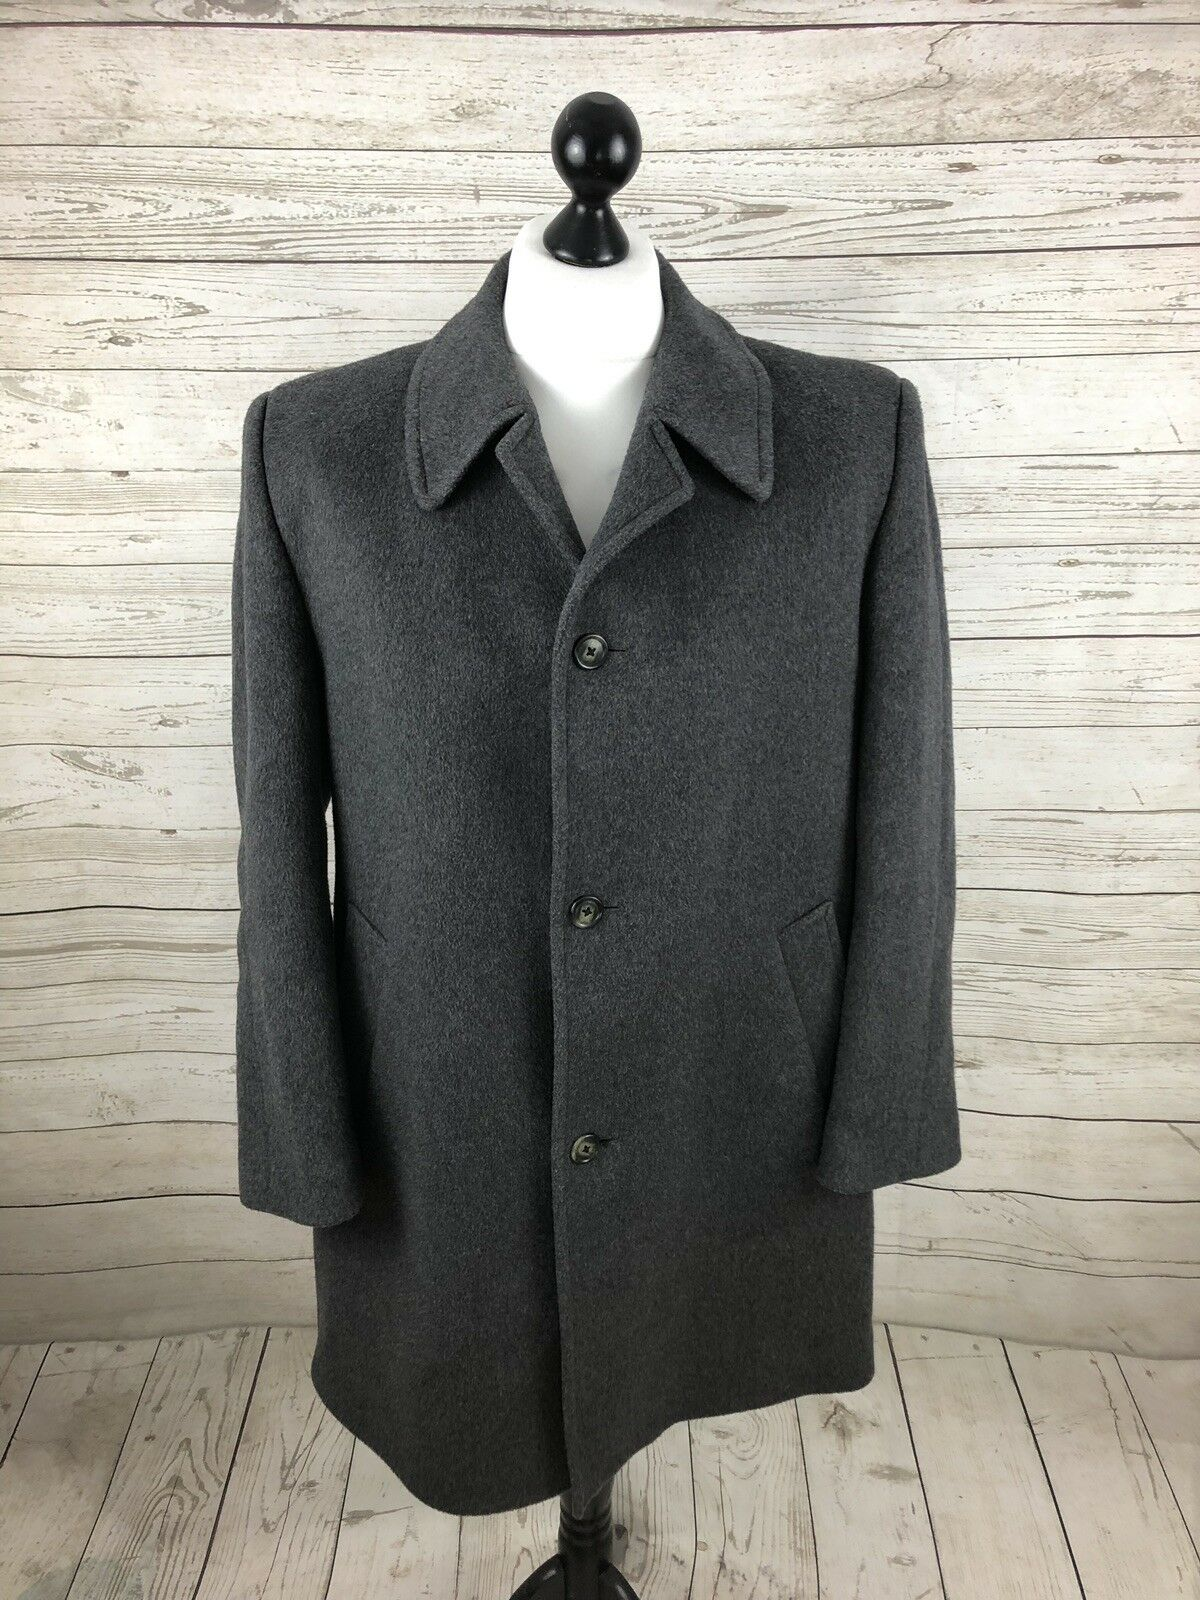 WELLINGTON Vintage Overcoat - 40 Small - Cashmere- Grey - Wool - Great Condition